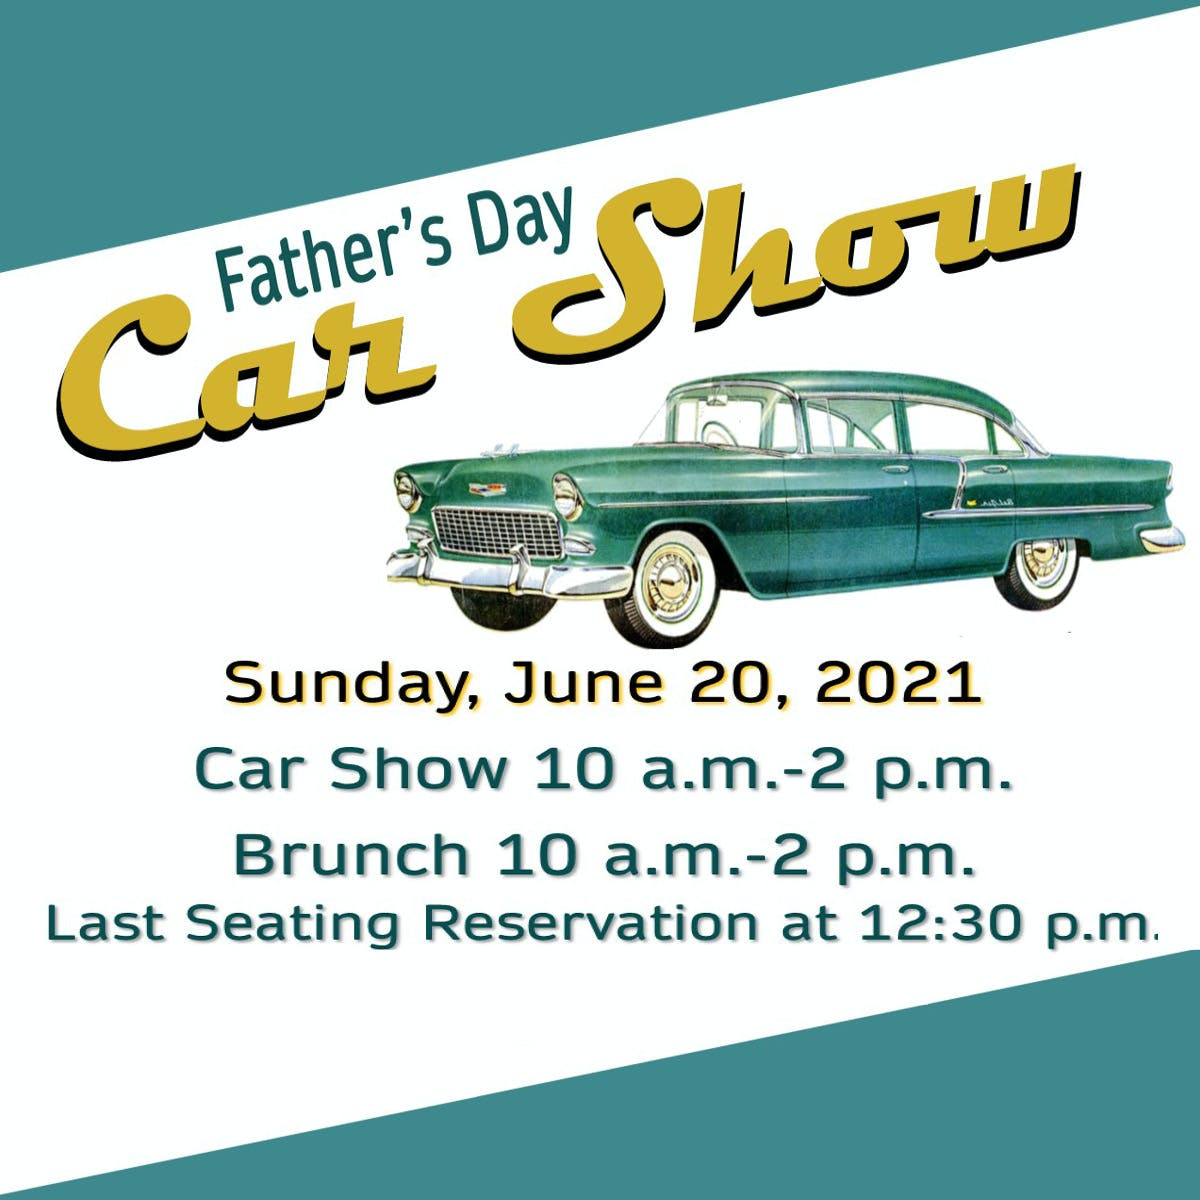 Father's Day Car Show and Brunch